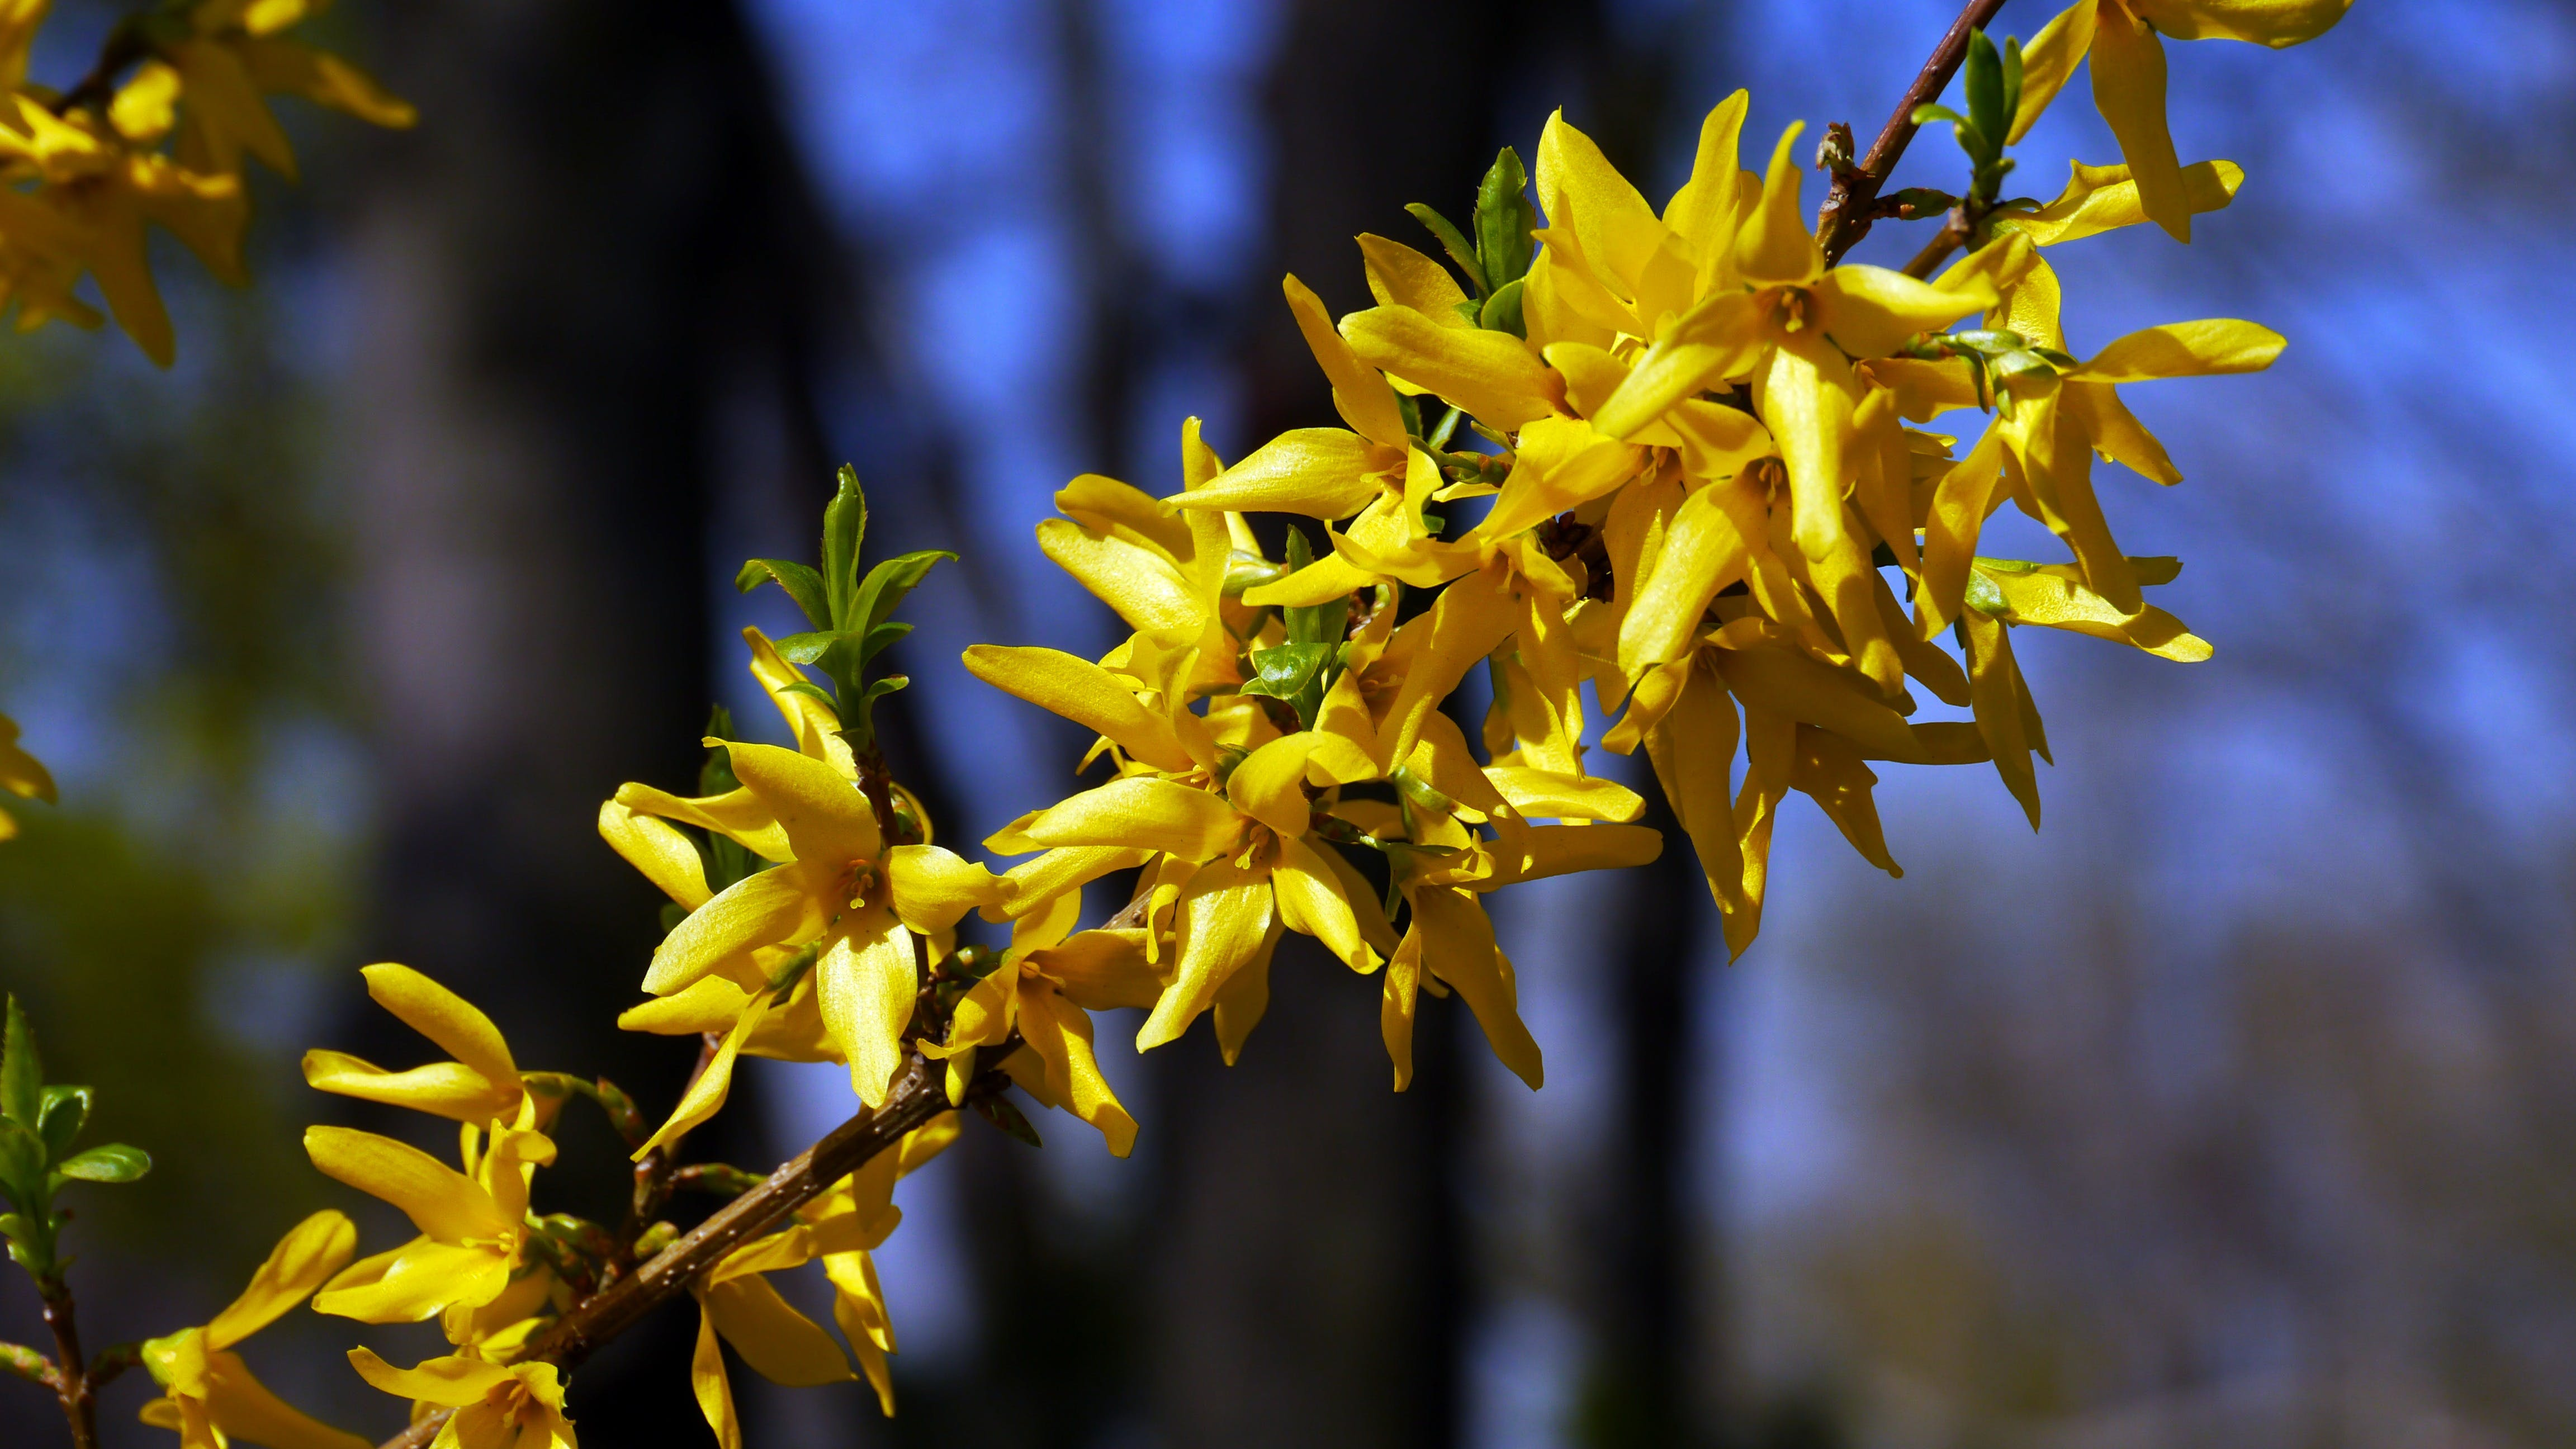 Yellow Petaled Flower during Daytime Selective Focus Photography